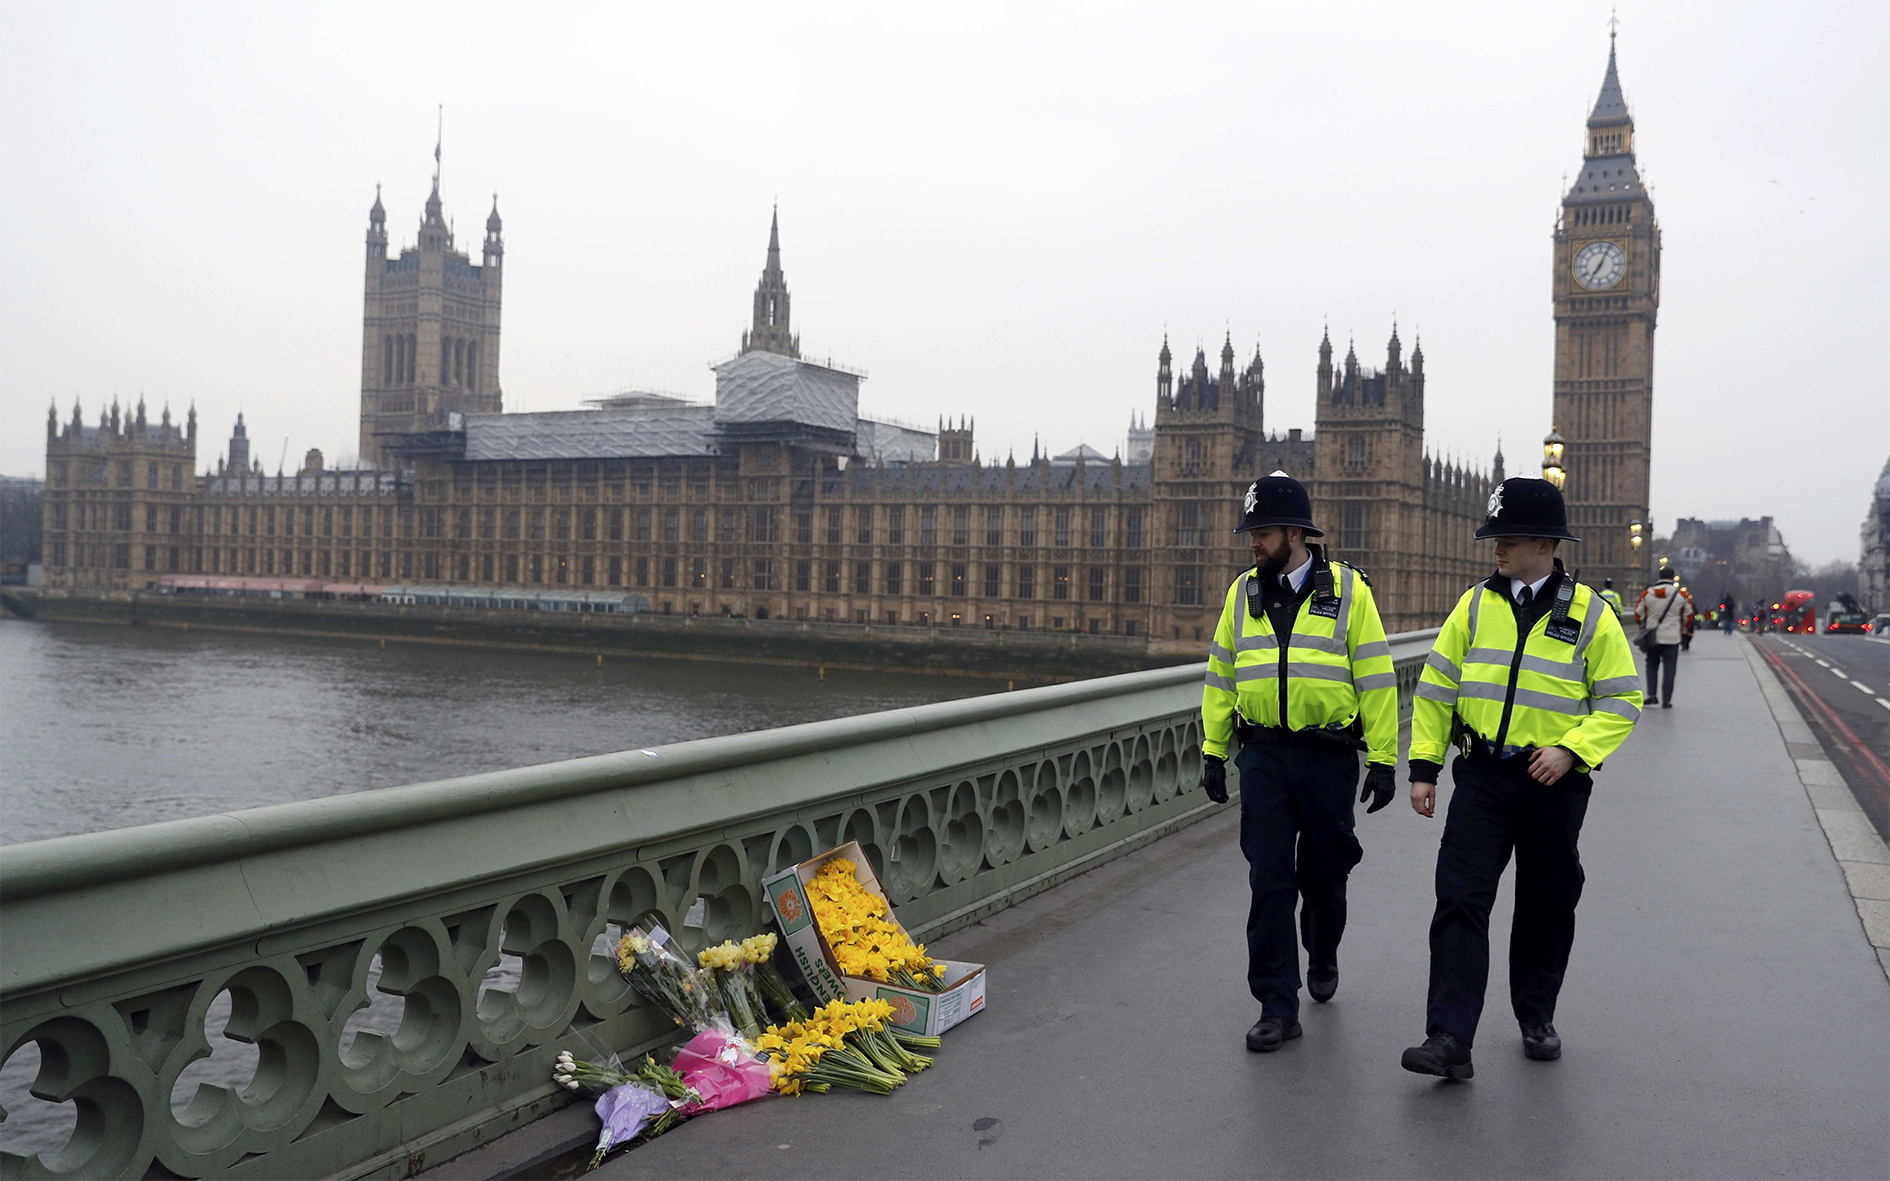 Flowers are placed at the scene of an attack on Westminster Bridge, in London, Britain, on 24 March 2017.